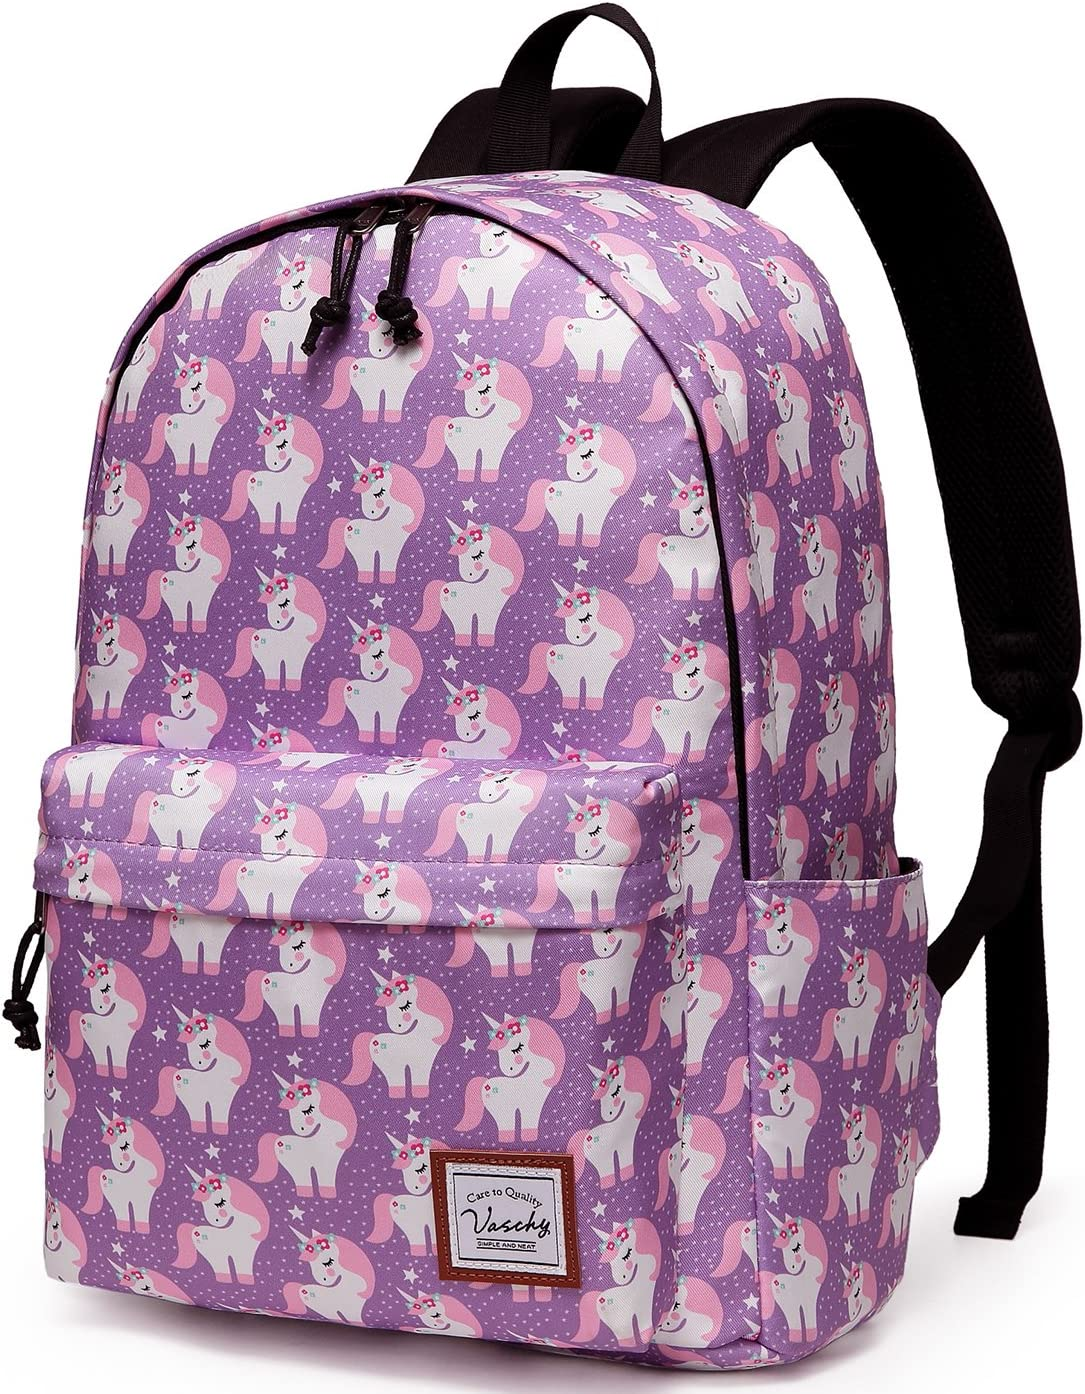 Backpacks for School Fashion Backpack for Women and Teens with Laptop Sleeve, Groovy Abstract Pink and Turquoise Swirl with Flowers